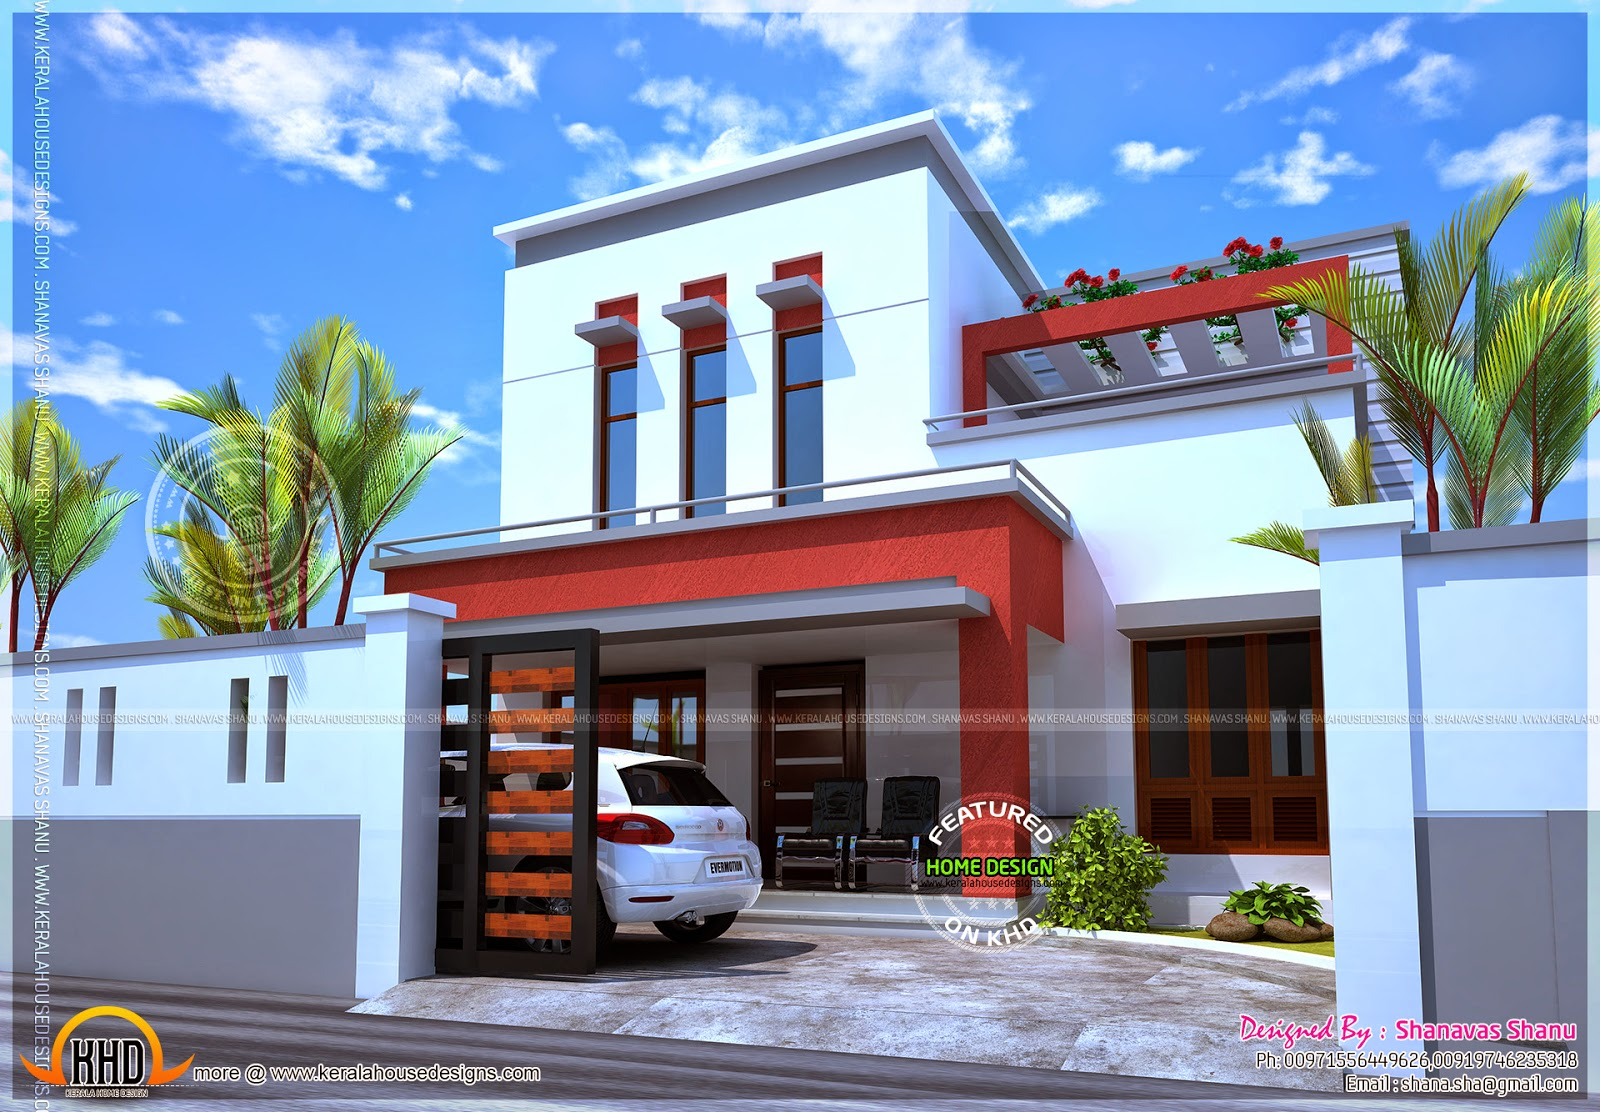 Beautiful house flat roof kerala home design and floor plans for Modern beautiful house